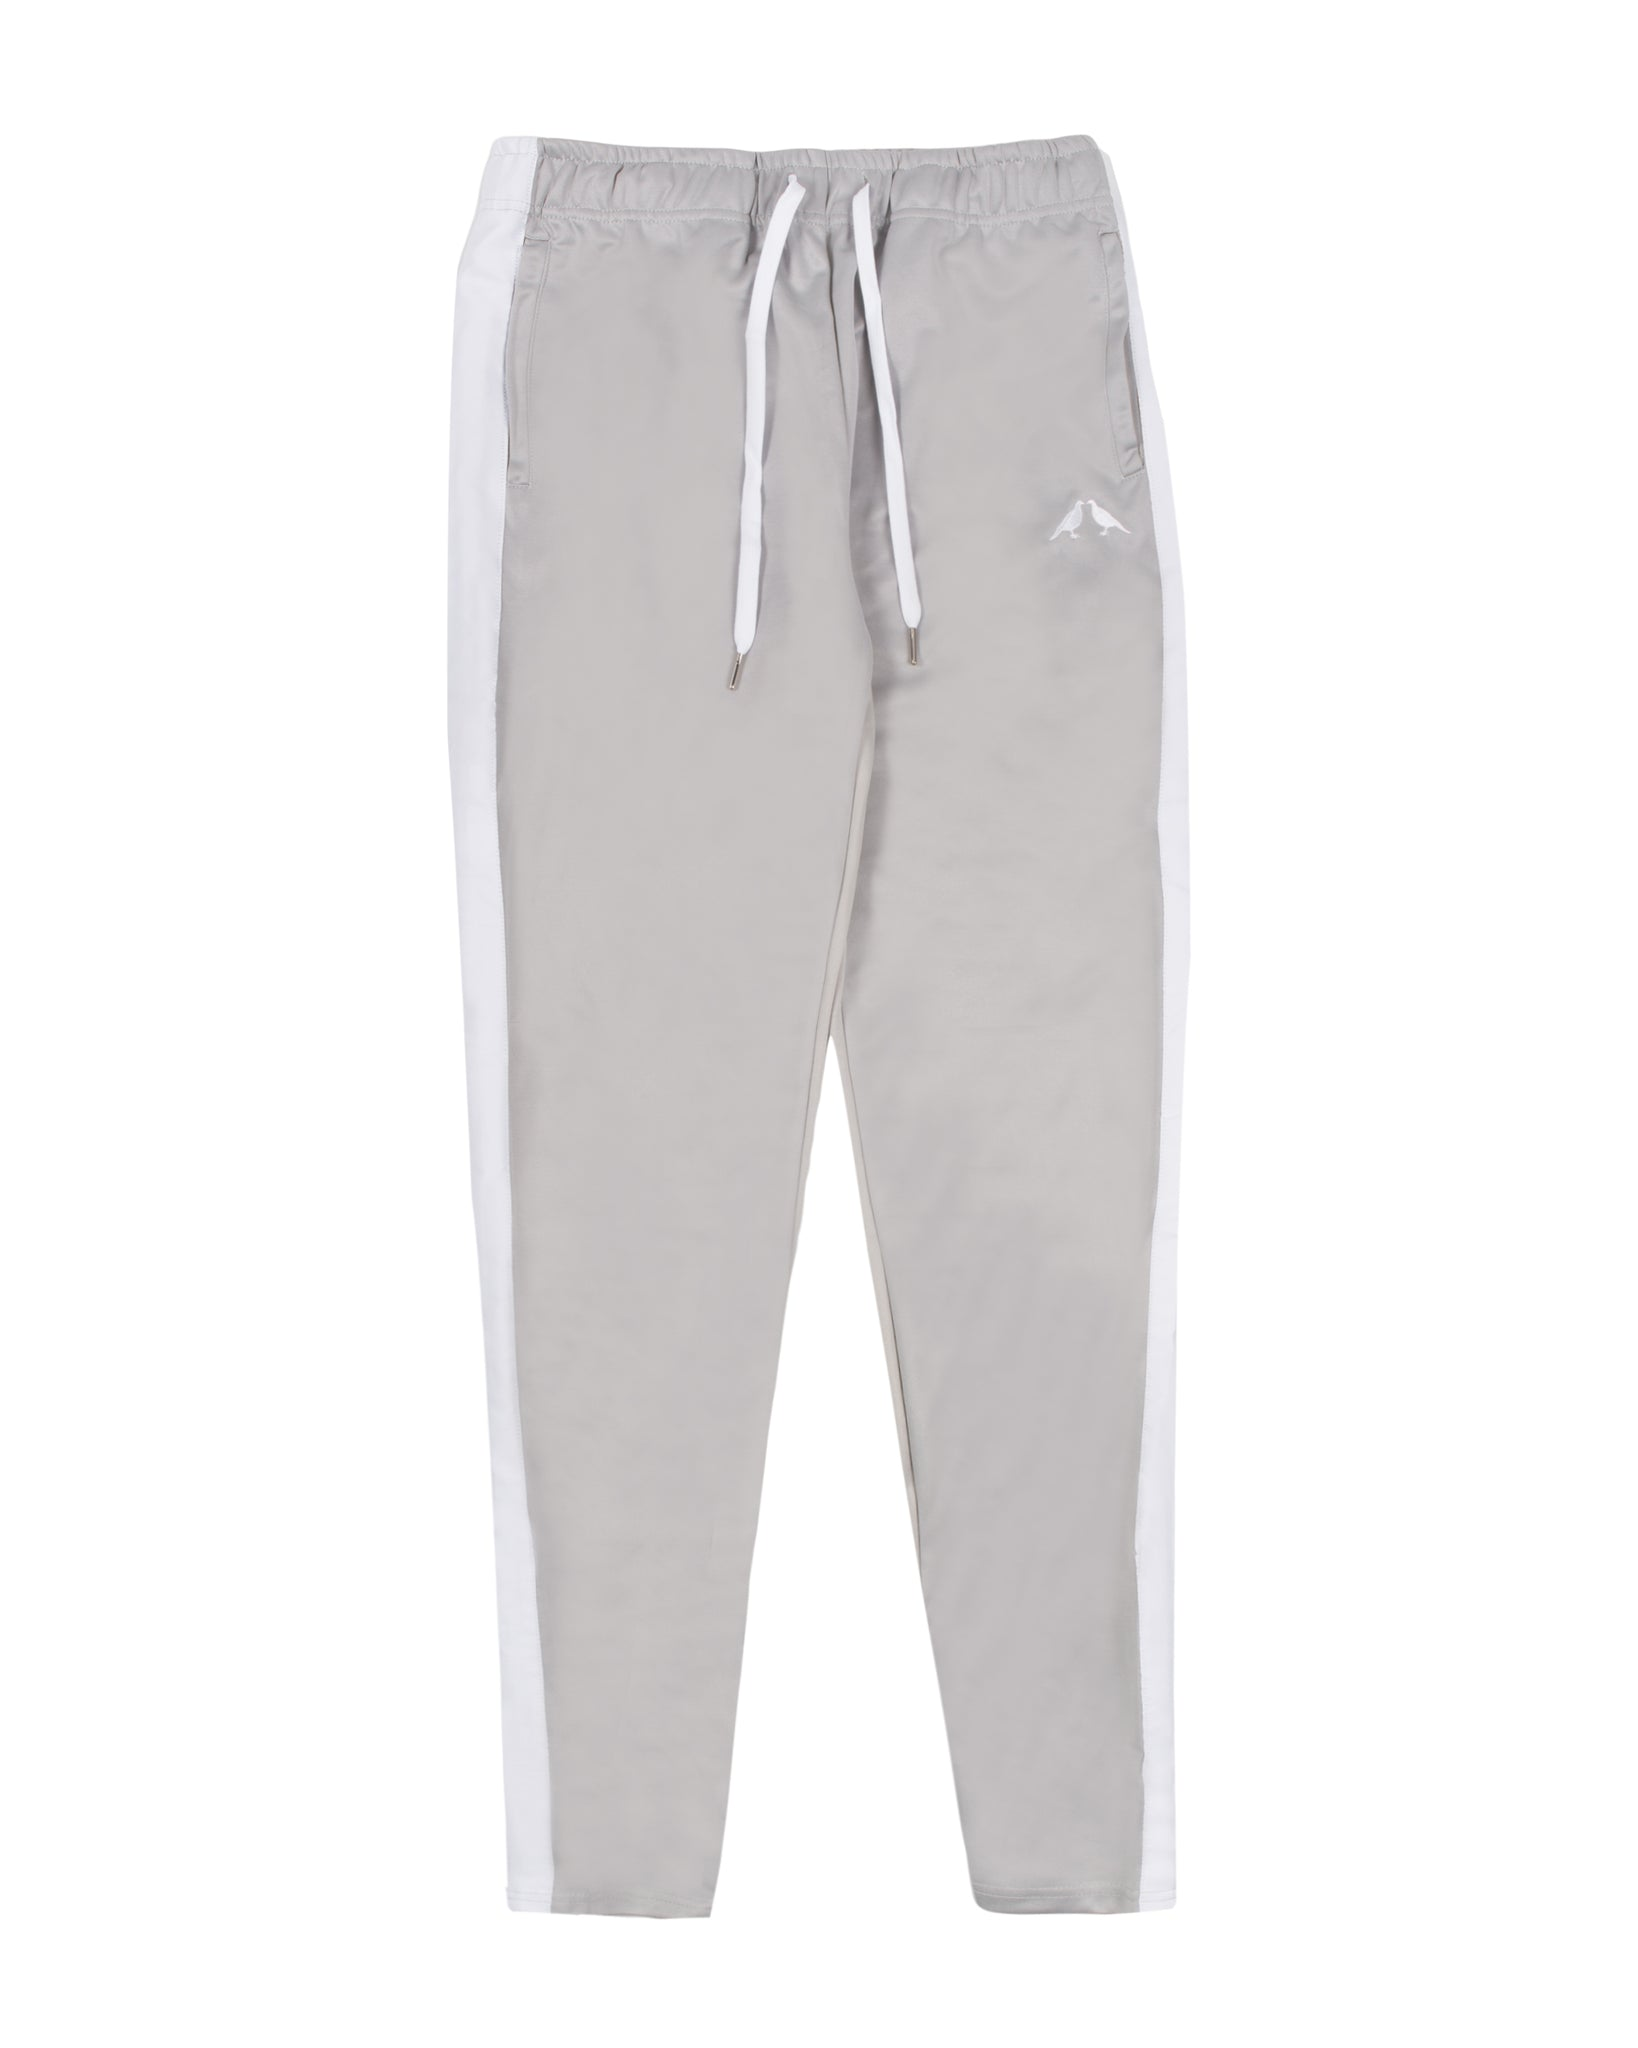 Weekend Pants (Gry/Wht)